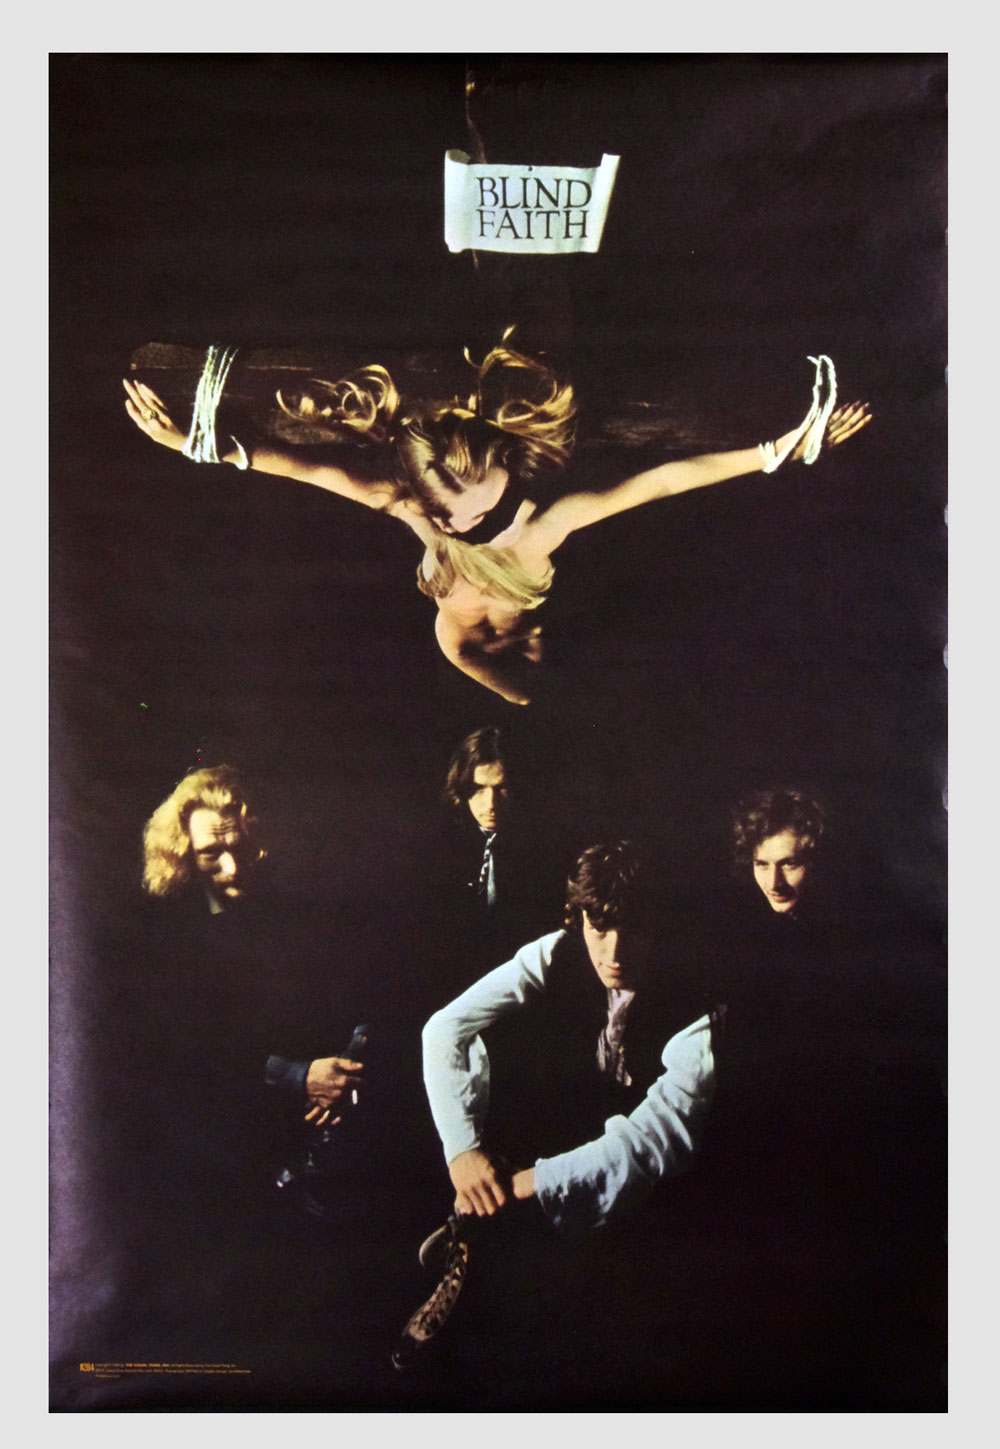 Blind Faith Poster 1969 The Visual Thing B284 24 x 36 Condition Very Fine